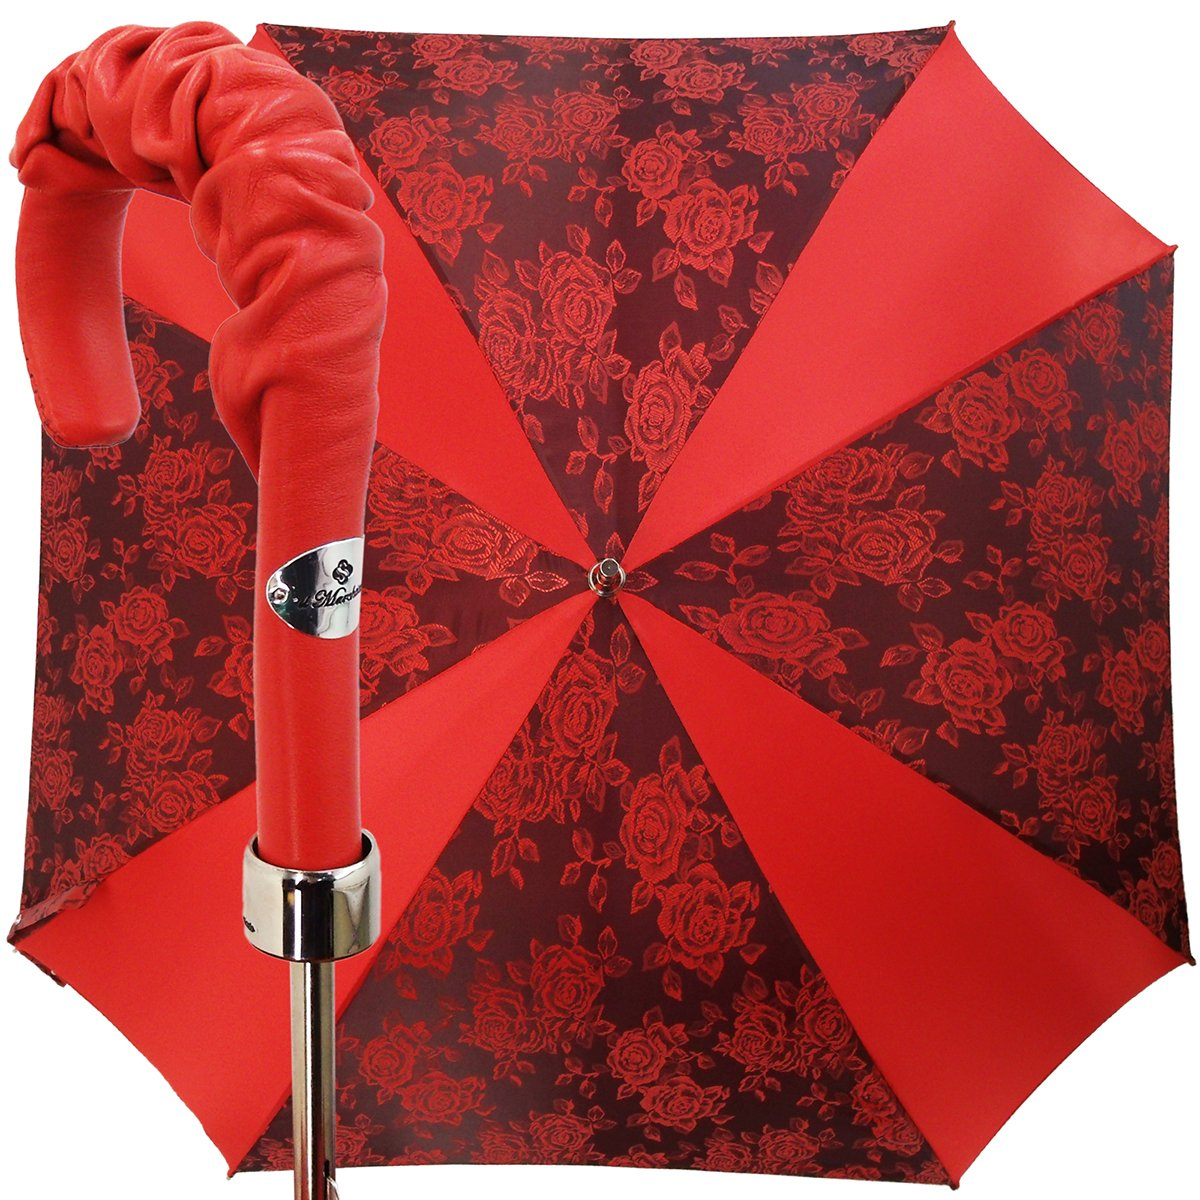 Cool Red Square Women Umbrella - il-marchesato